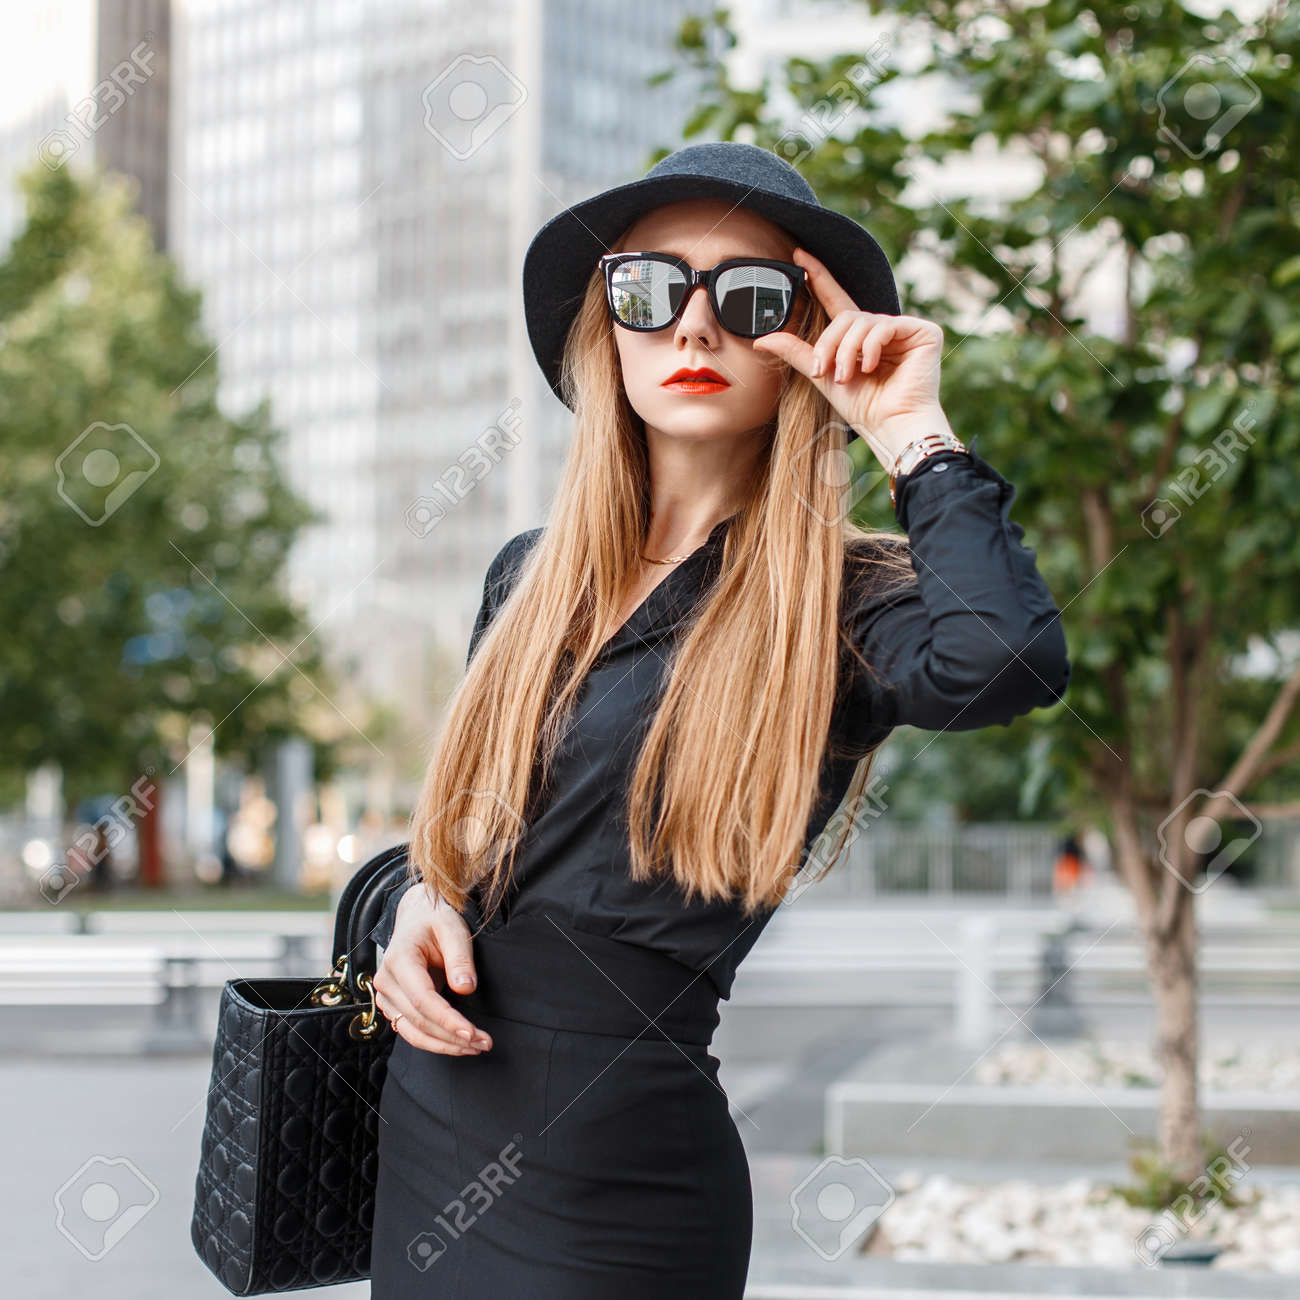 29d5ae09c Beautiful Stylish Girl In Black Clothes With Sunglasses And A ...